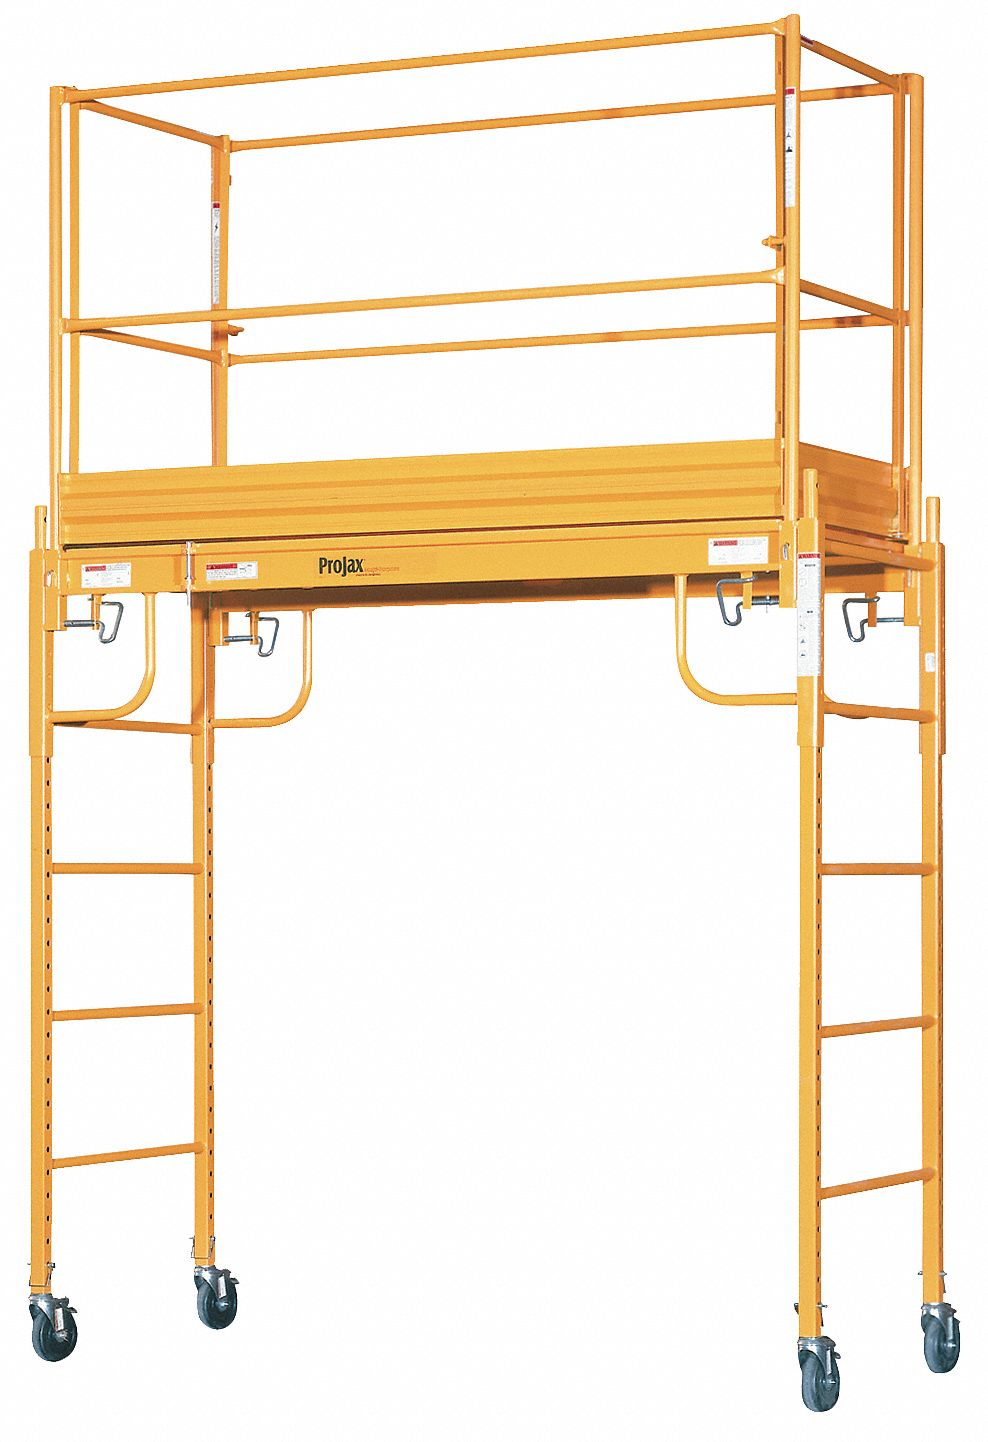 Scaffold Tower, Steel, 2 to 6 ft Platform Height, 9-1/2 ft Overall Height, 1,000 lb Load Capacity